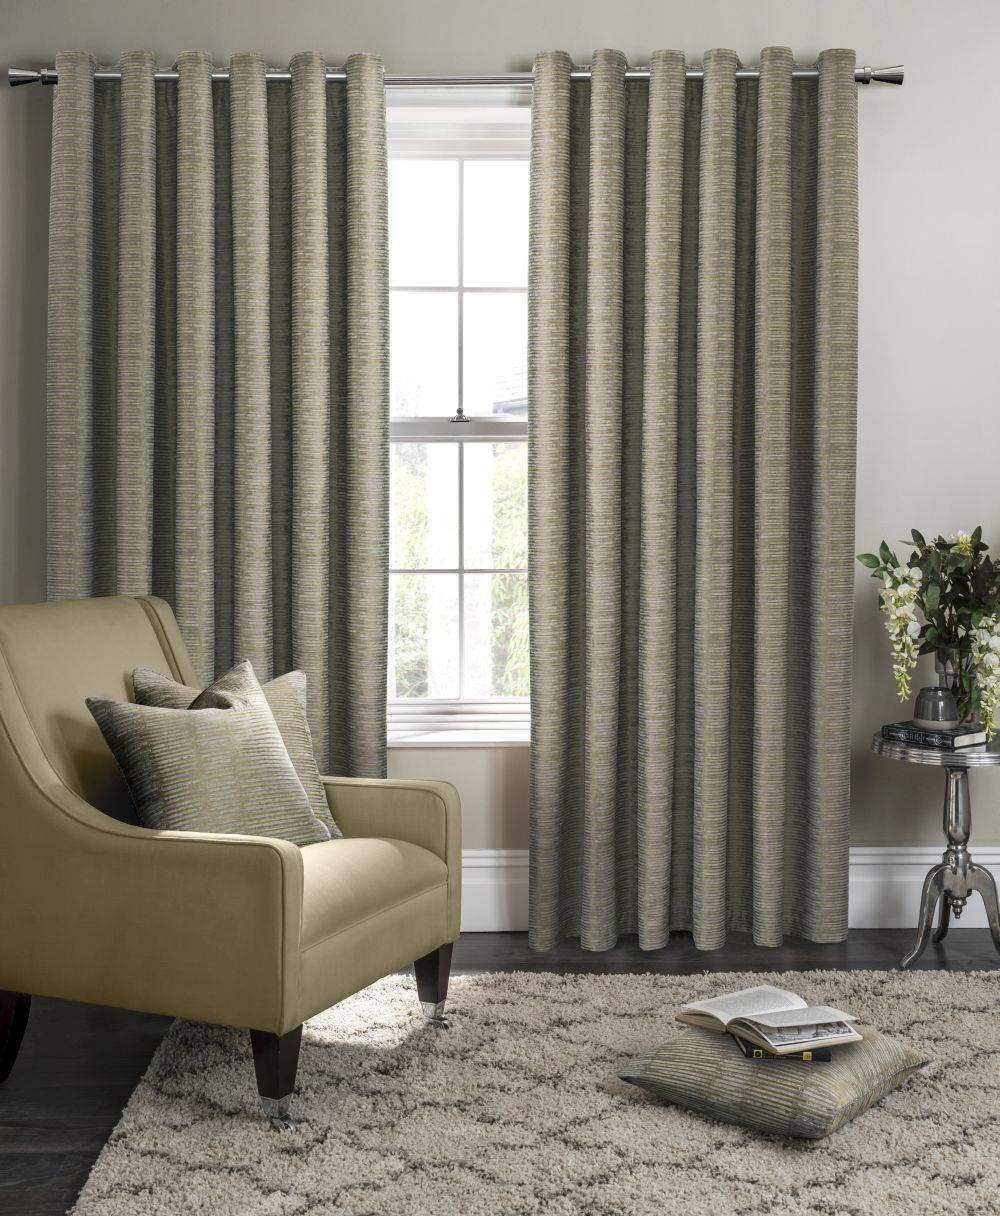 Studio G Campello Eyelet Curtains Olive Ready Made Curtains - Product code: M1101/02/46X5